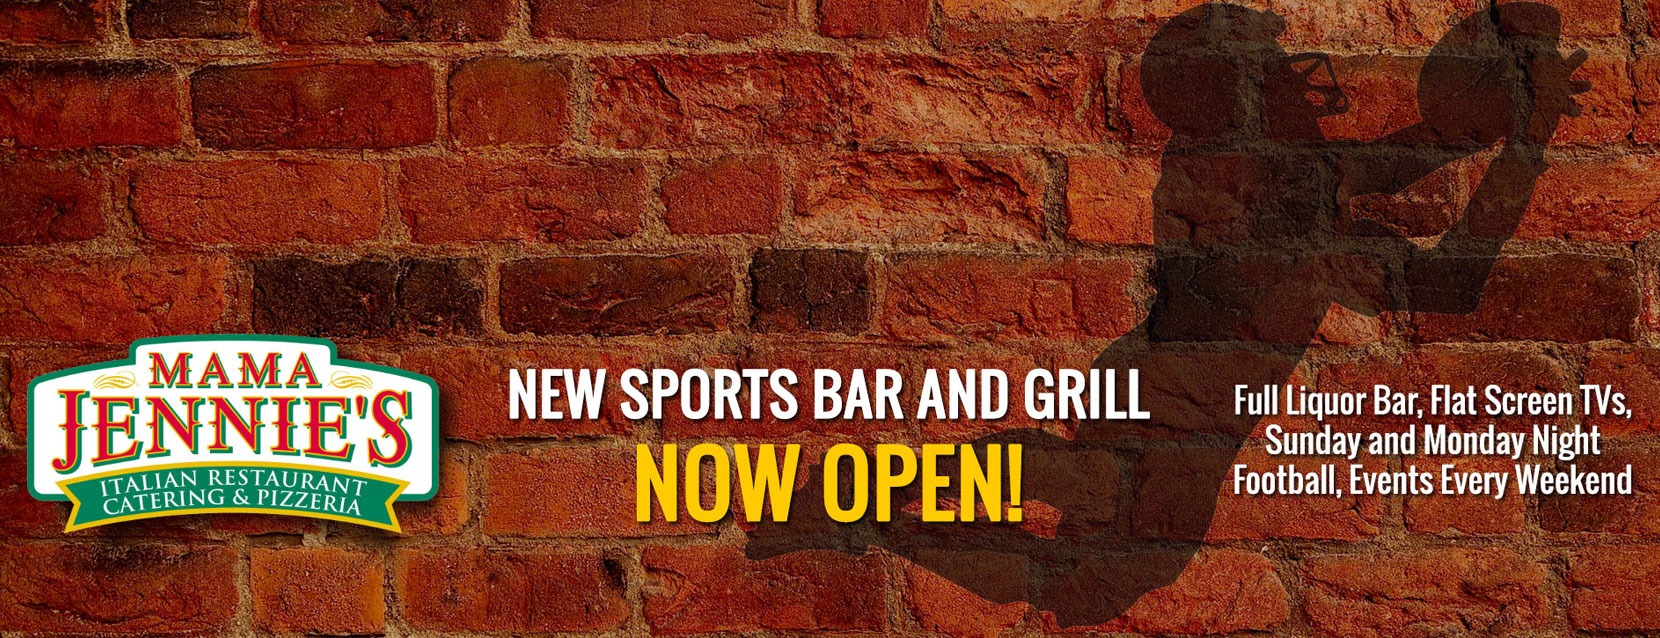 New Sports Bar and Grill Now Open!